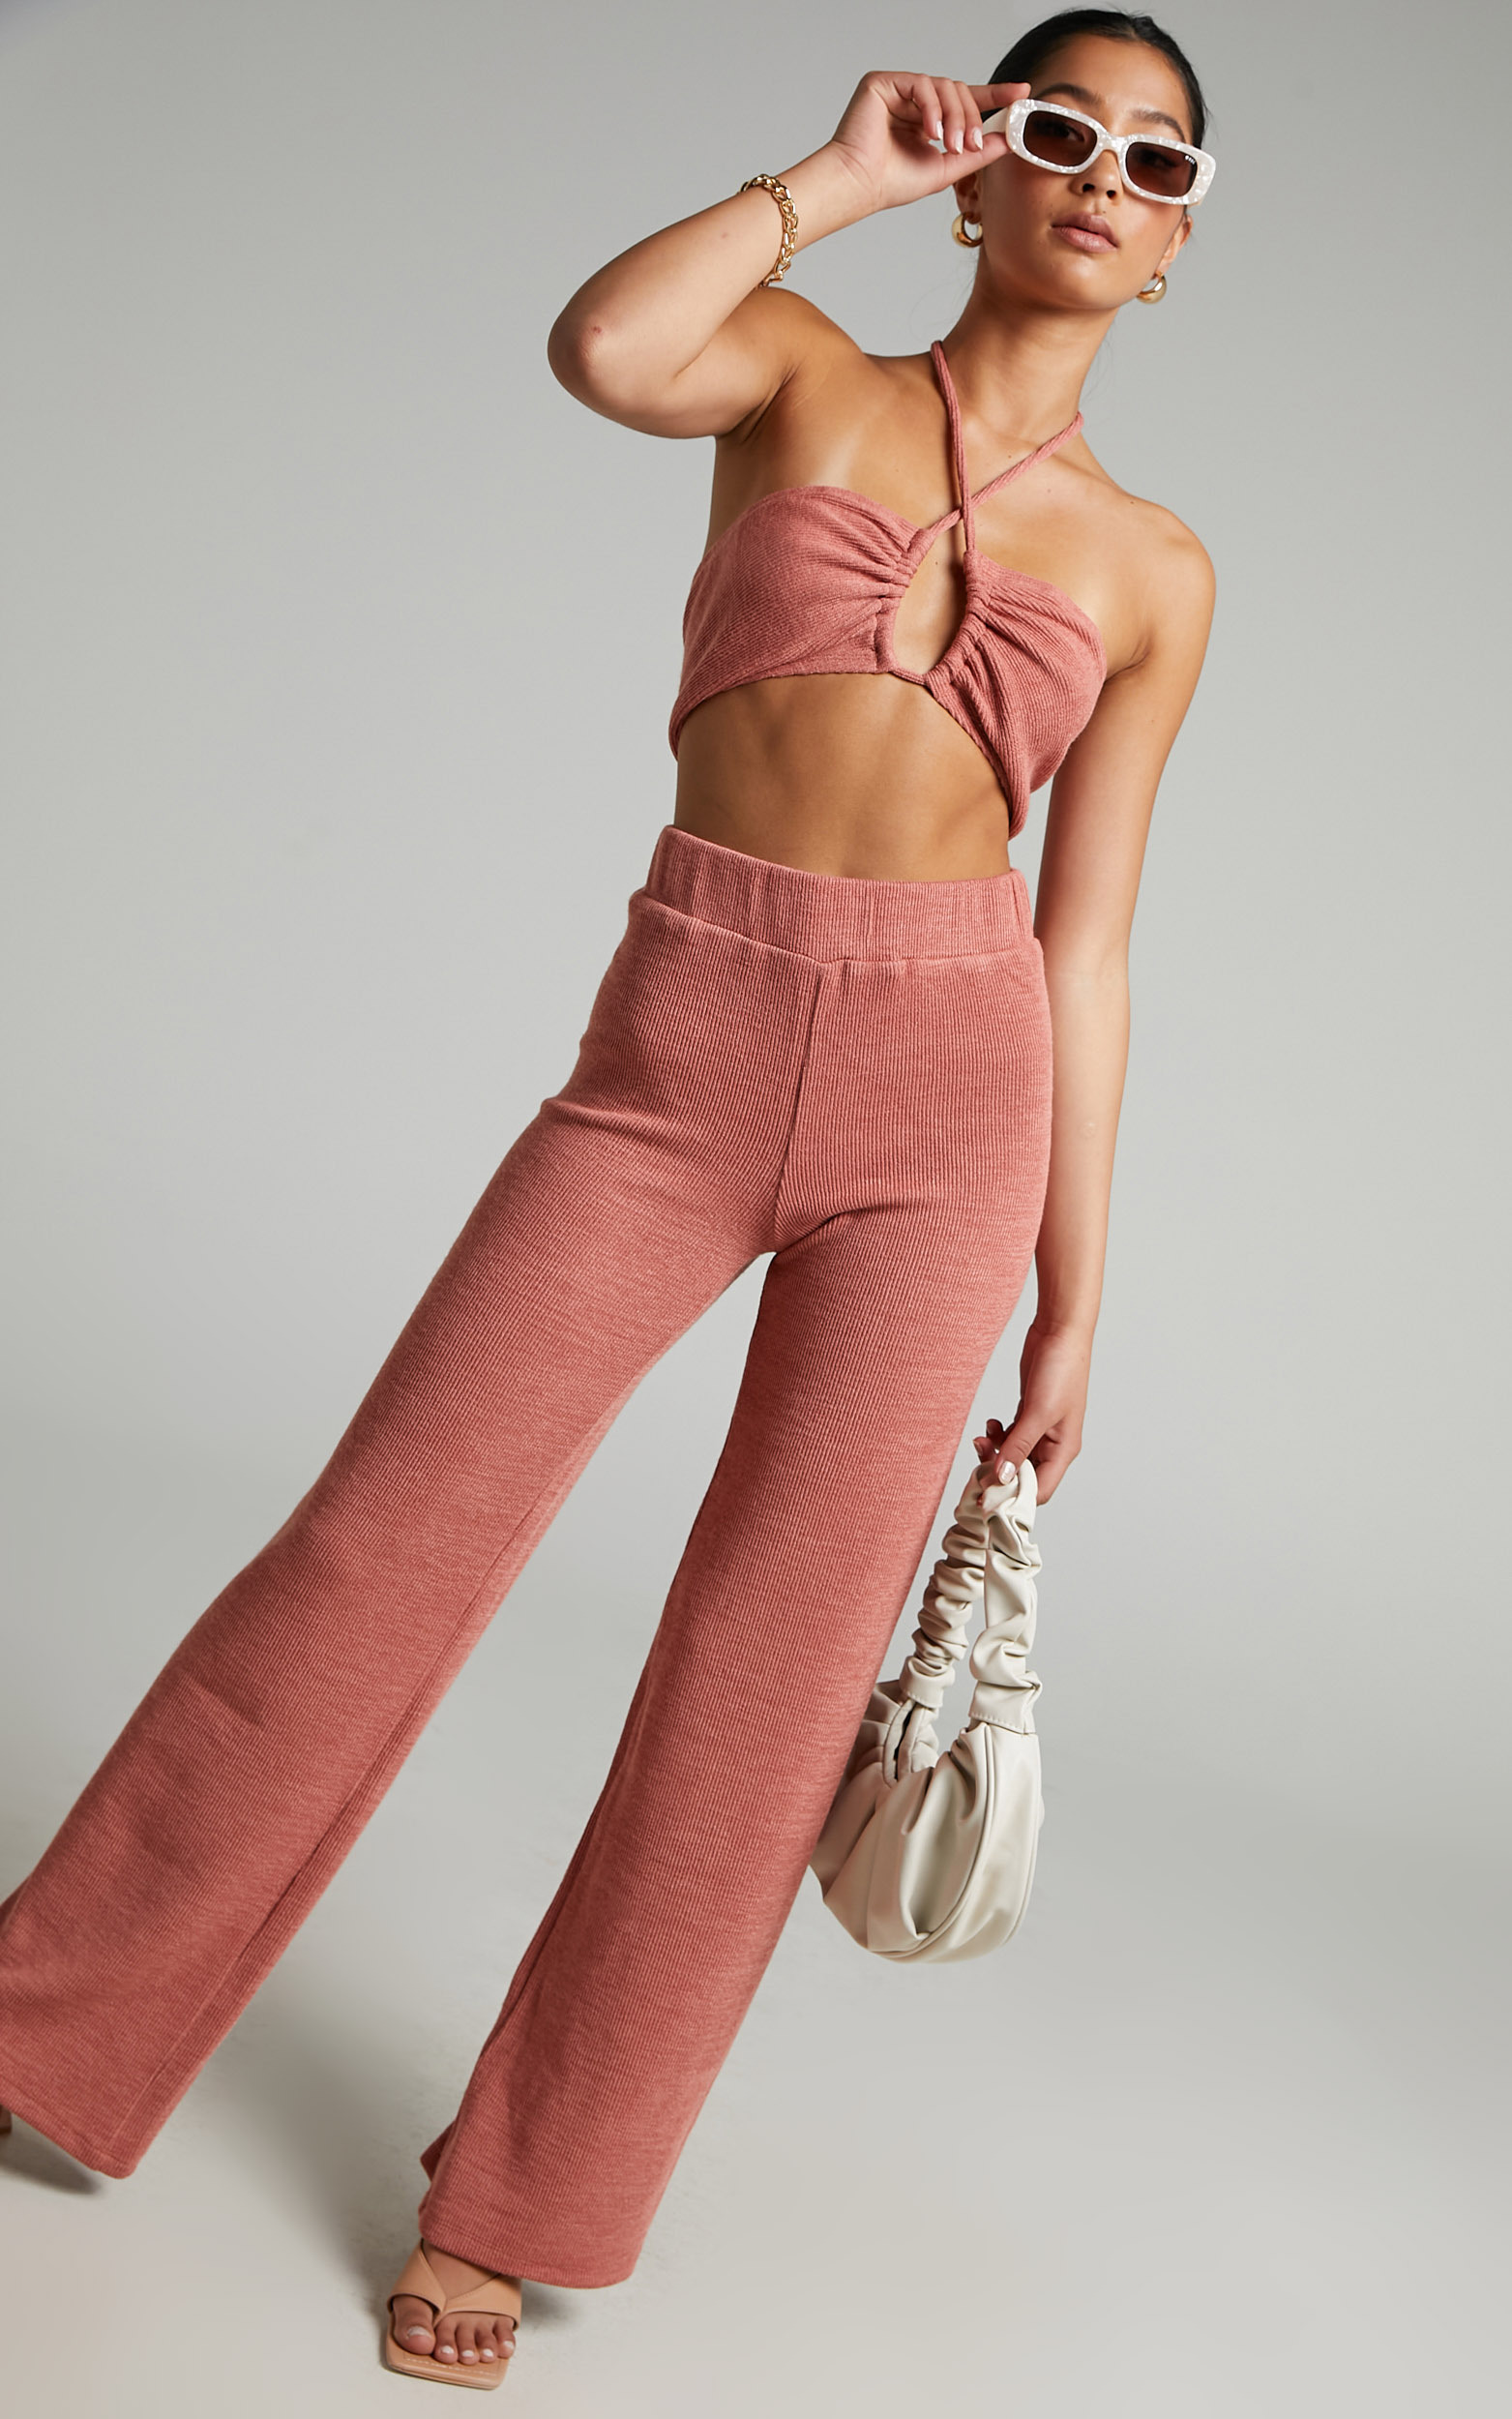 Juliann Knit Two Piece Pant Set with Crop Top in Terracotta - 04, ORG2, hi-res image number null